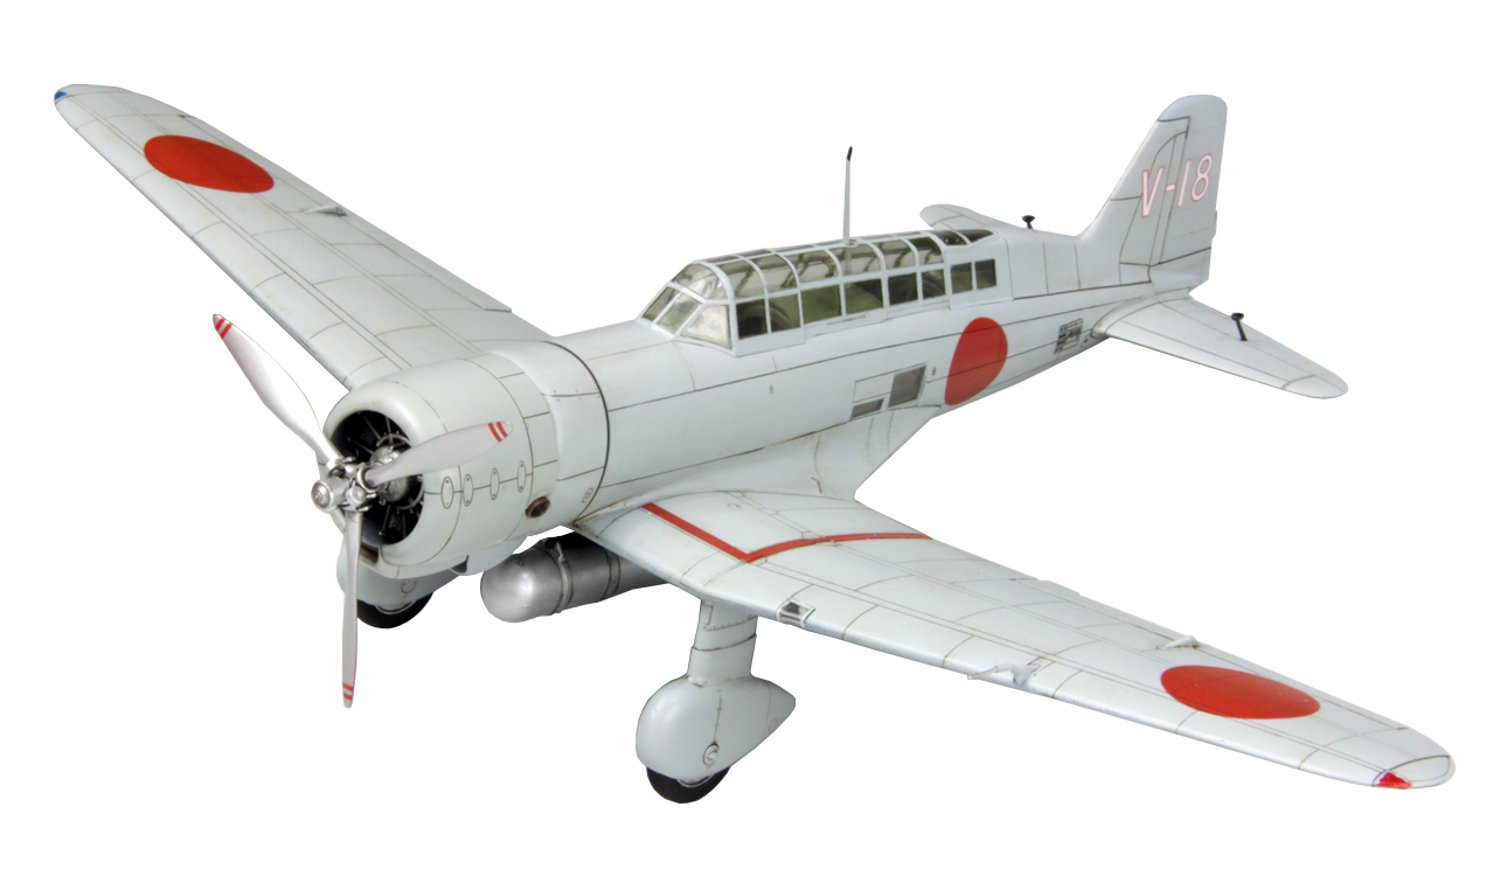 Fine molds 1/48 aircraft series Imperial Navy type 98 land reconnaissance aircraft twelve type plastic model FB24